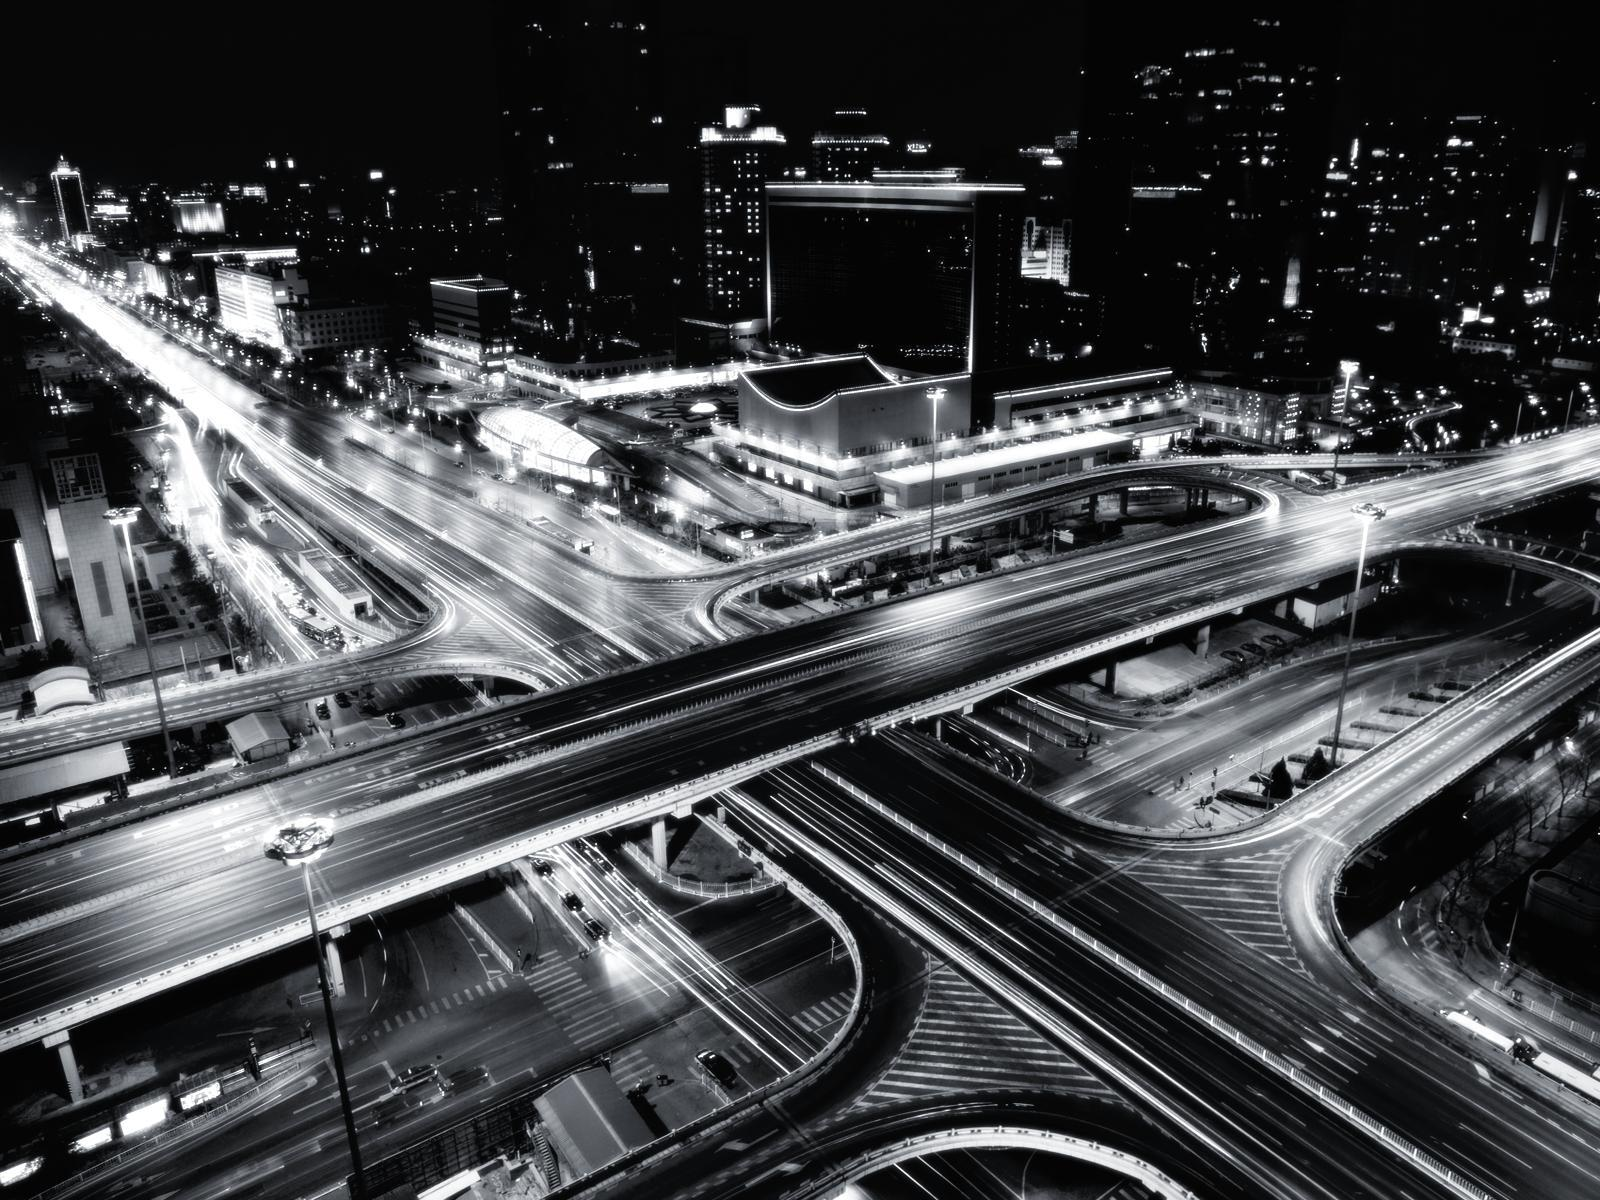 Black and White City Freeway wallpapers – We All Deserve What We